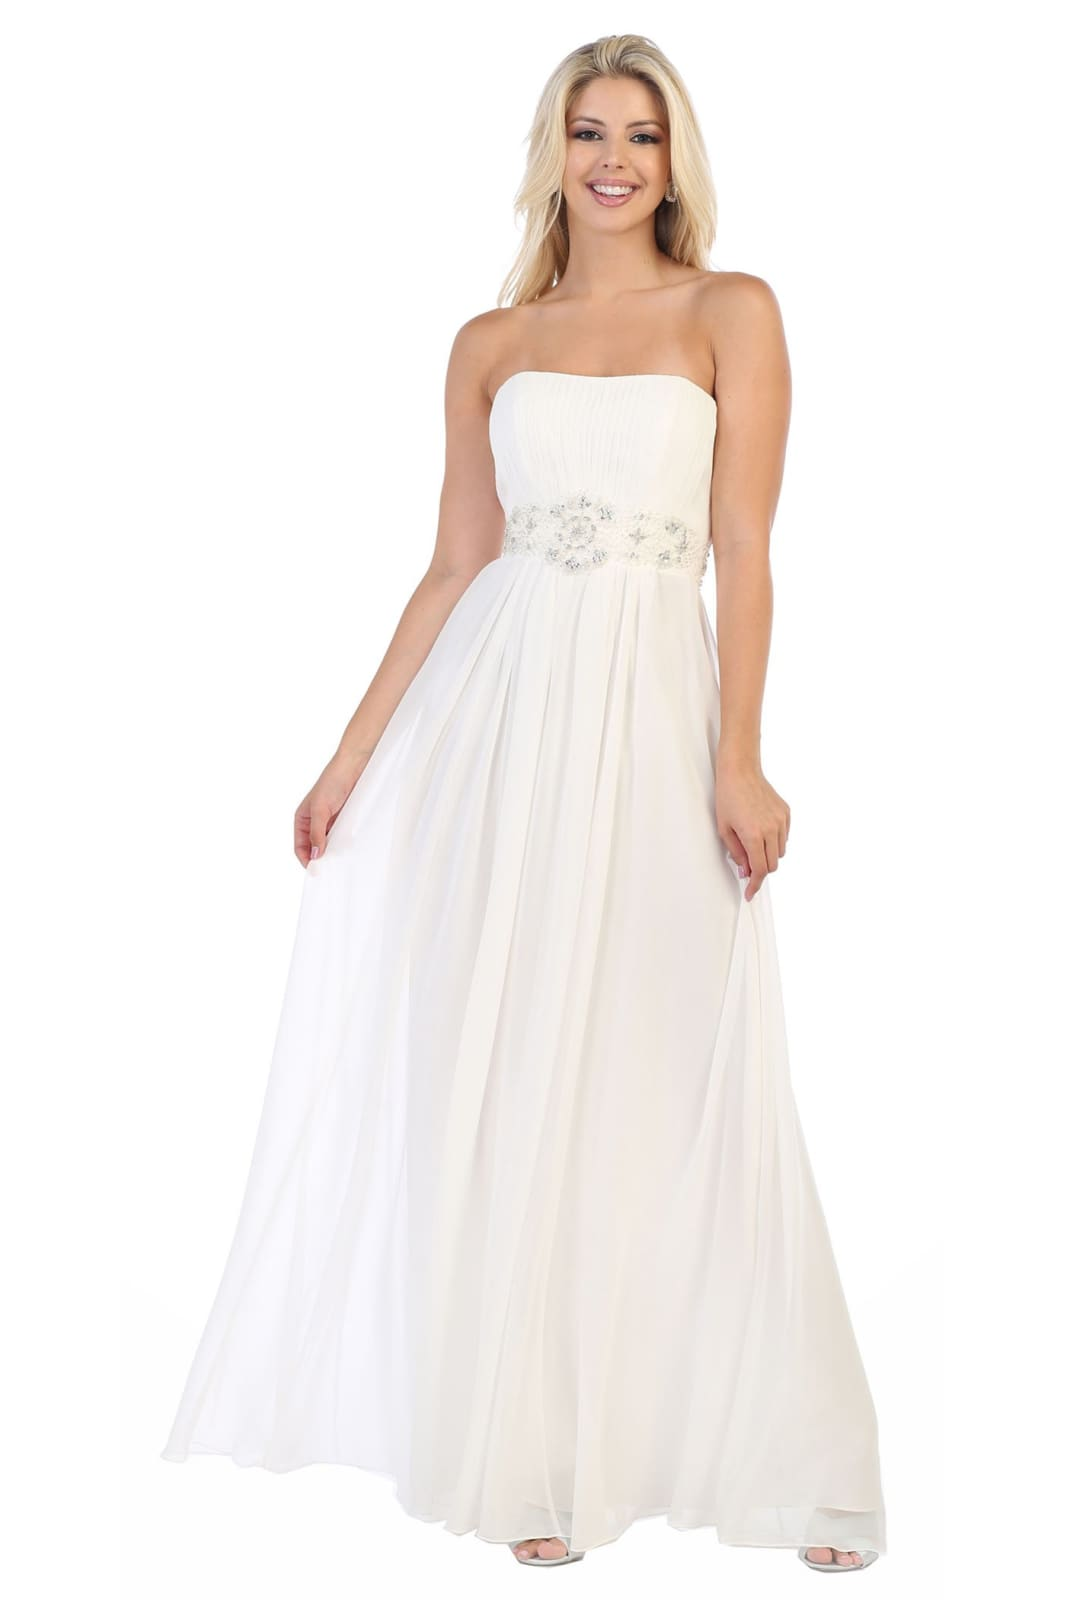 A Beautiful Strapless Chiffon Plus Size Dress - MQ635B -